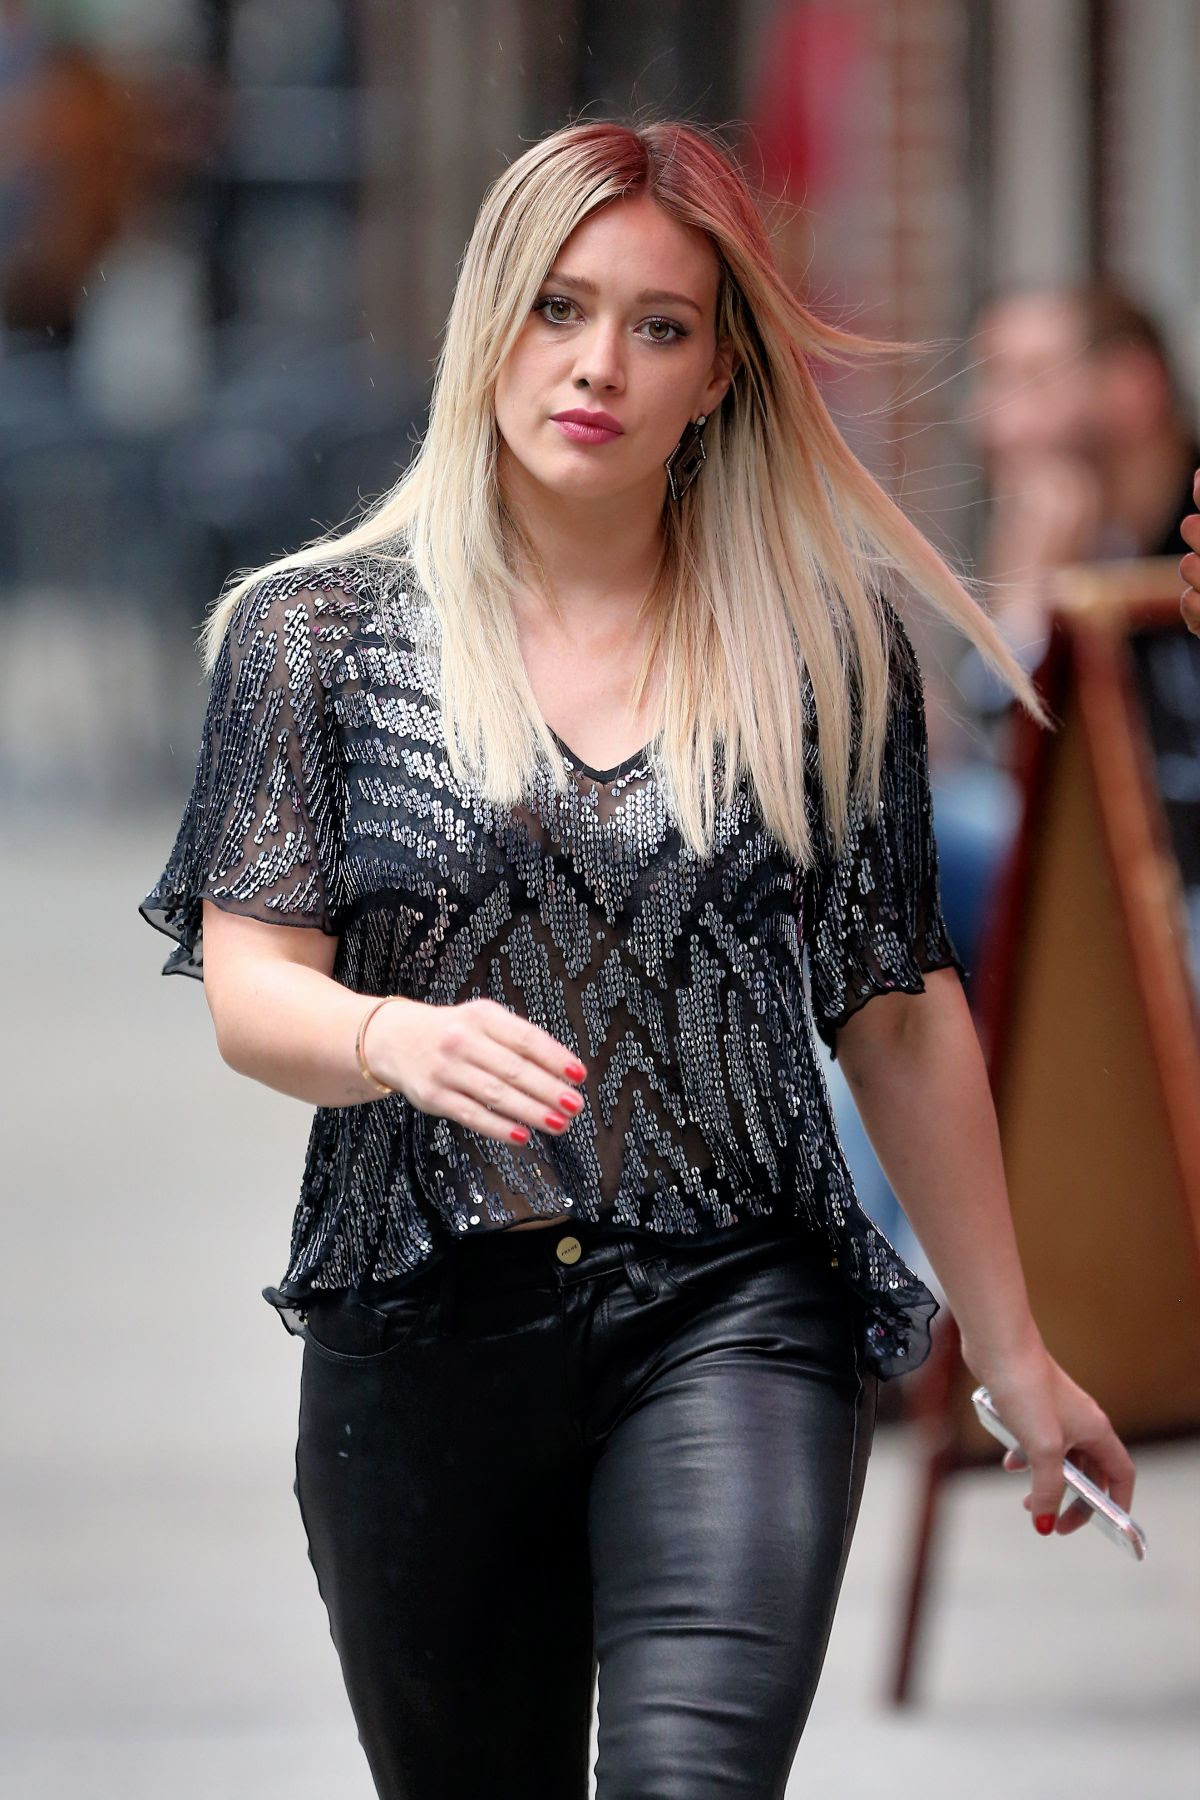 HILARY DUFF on the Set of Younger in New York 11/05/2015